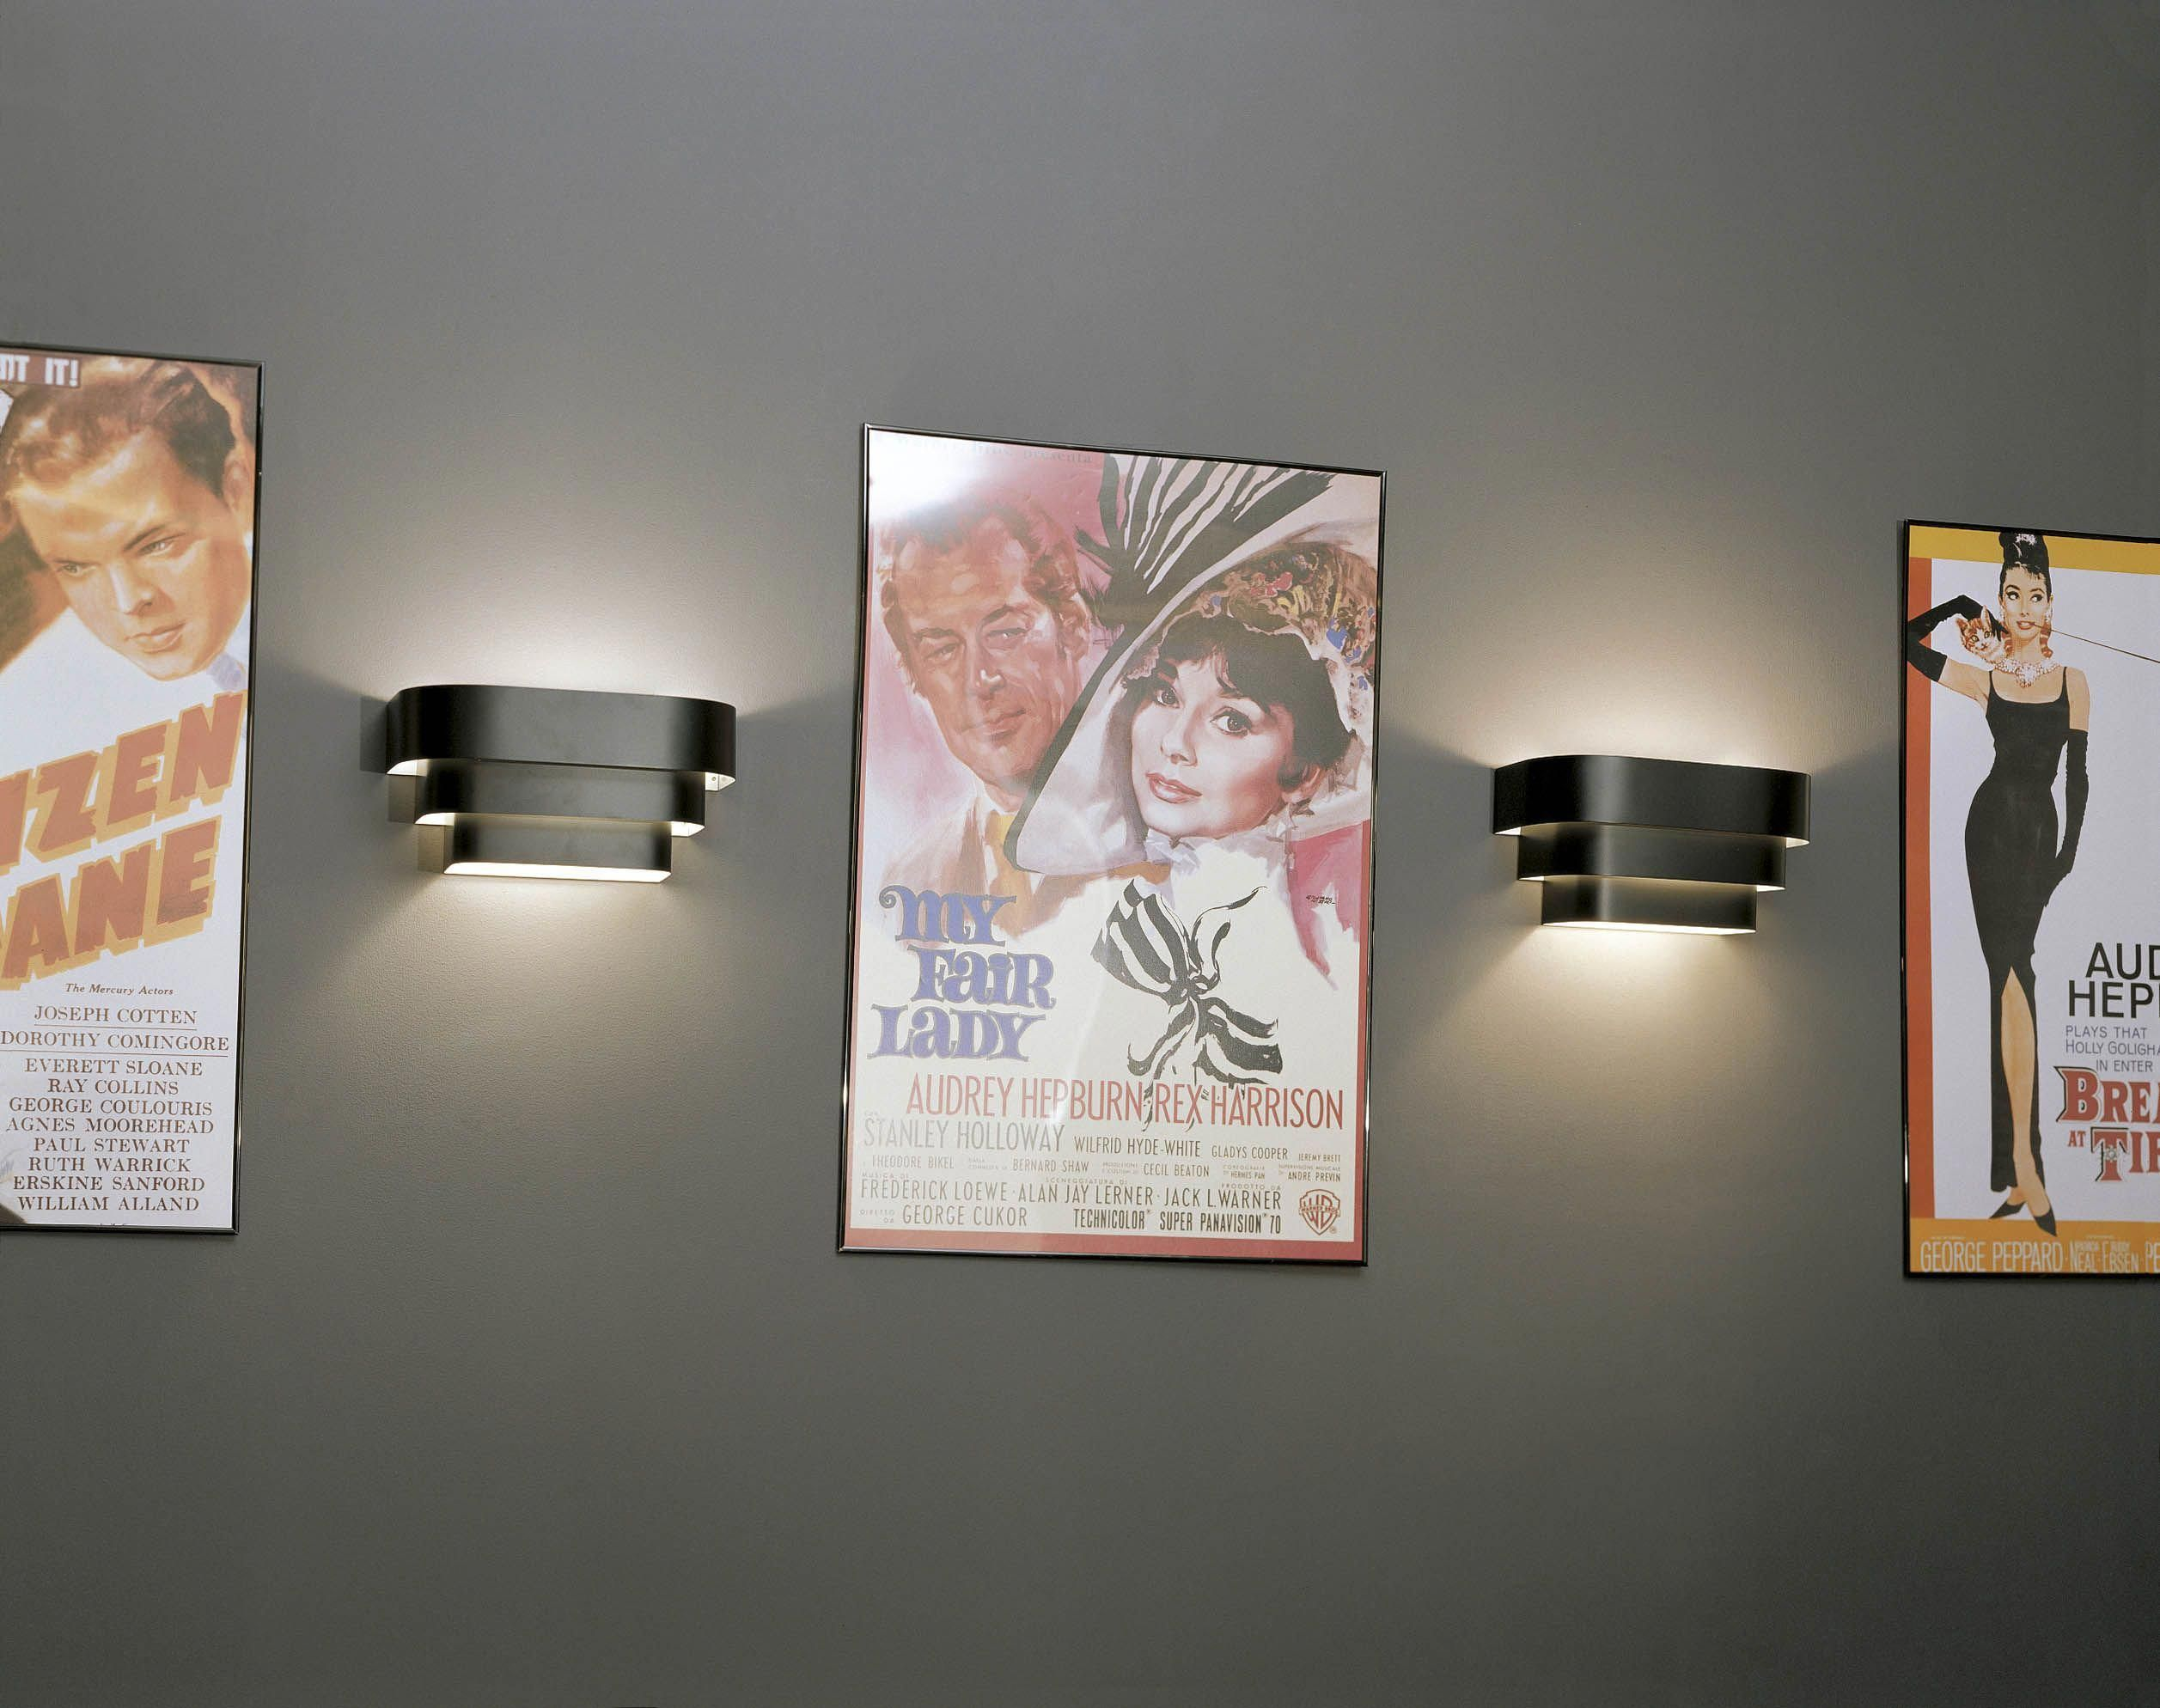 Home Theater Sconce From Progress Lighting With Subtle Art Deco Styling These Sconces Are A G Home Theater Furniture At Home Movie Theater Home Theater Setup